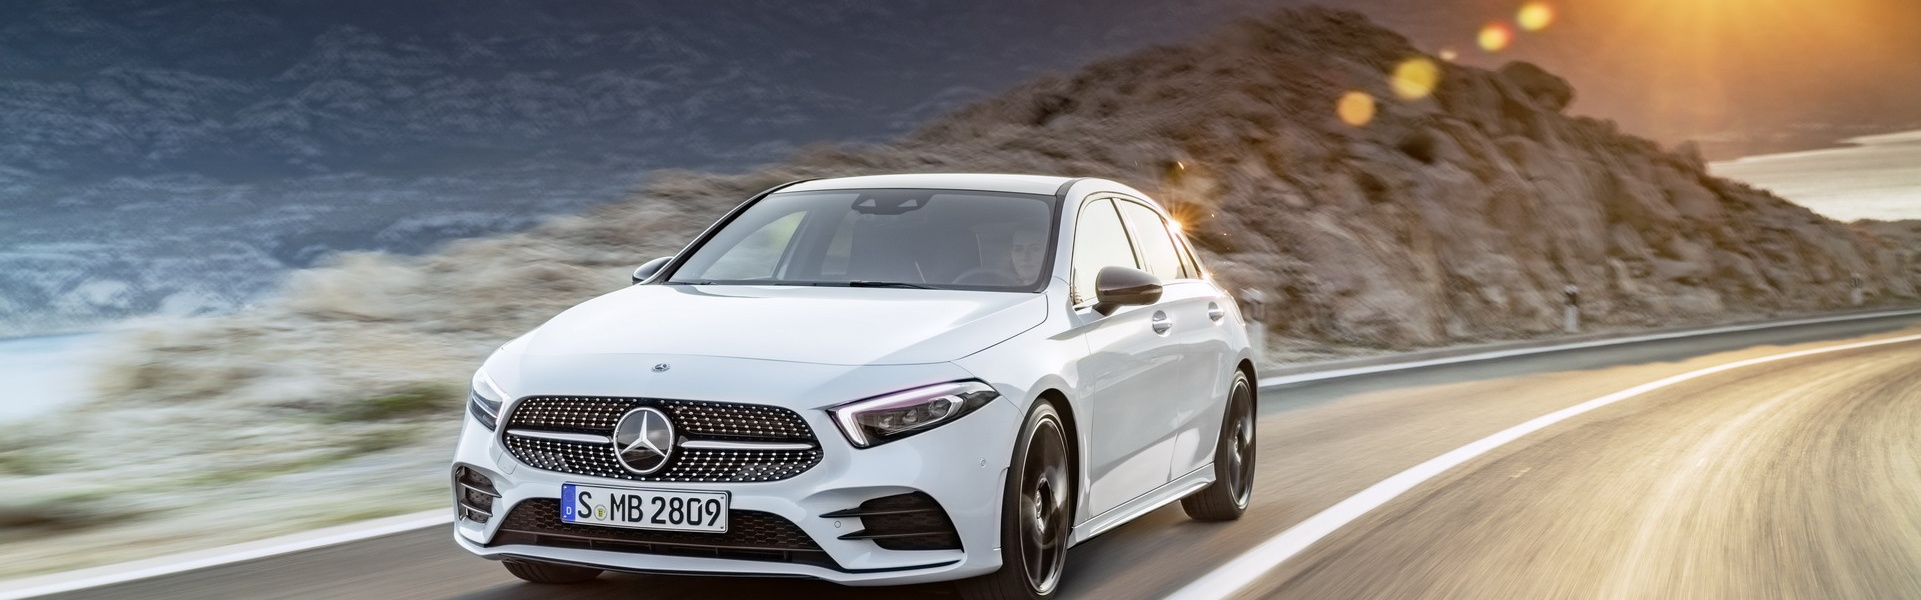 2019-Mercedes-Benz-A-Class-Hatch-01.jpg